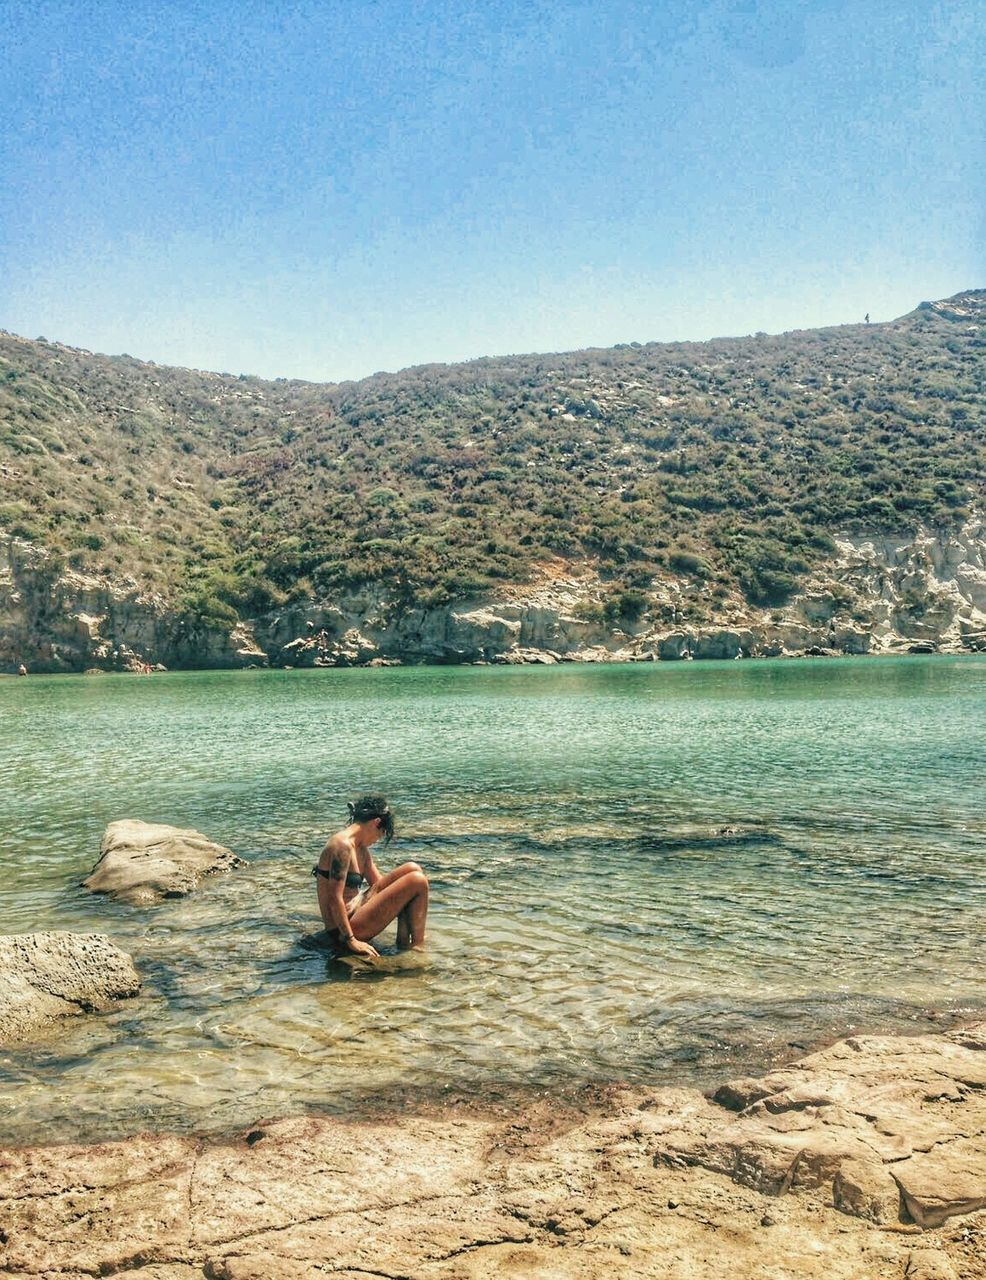 MAN SITTING ON SHORE AGAINST MOUNTAINS